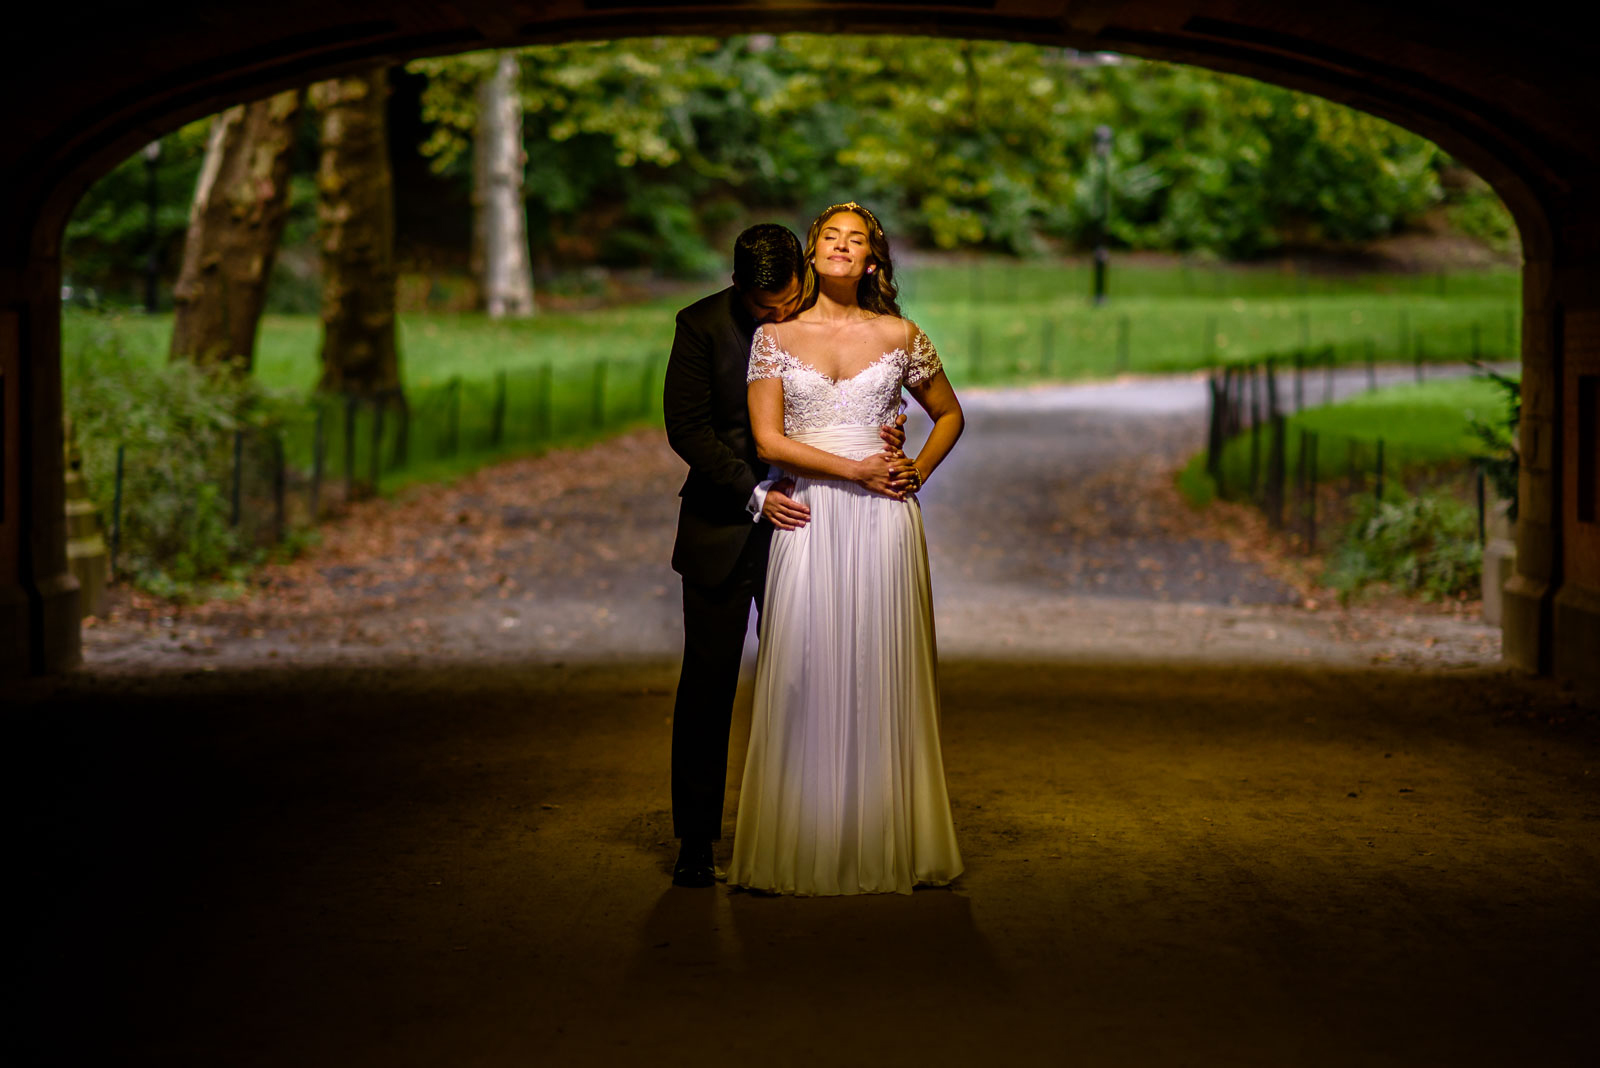 Brdie and groom portrait in tunnel